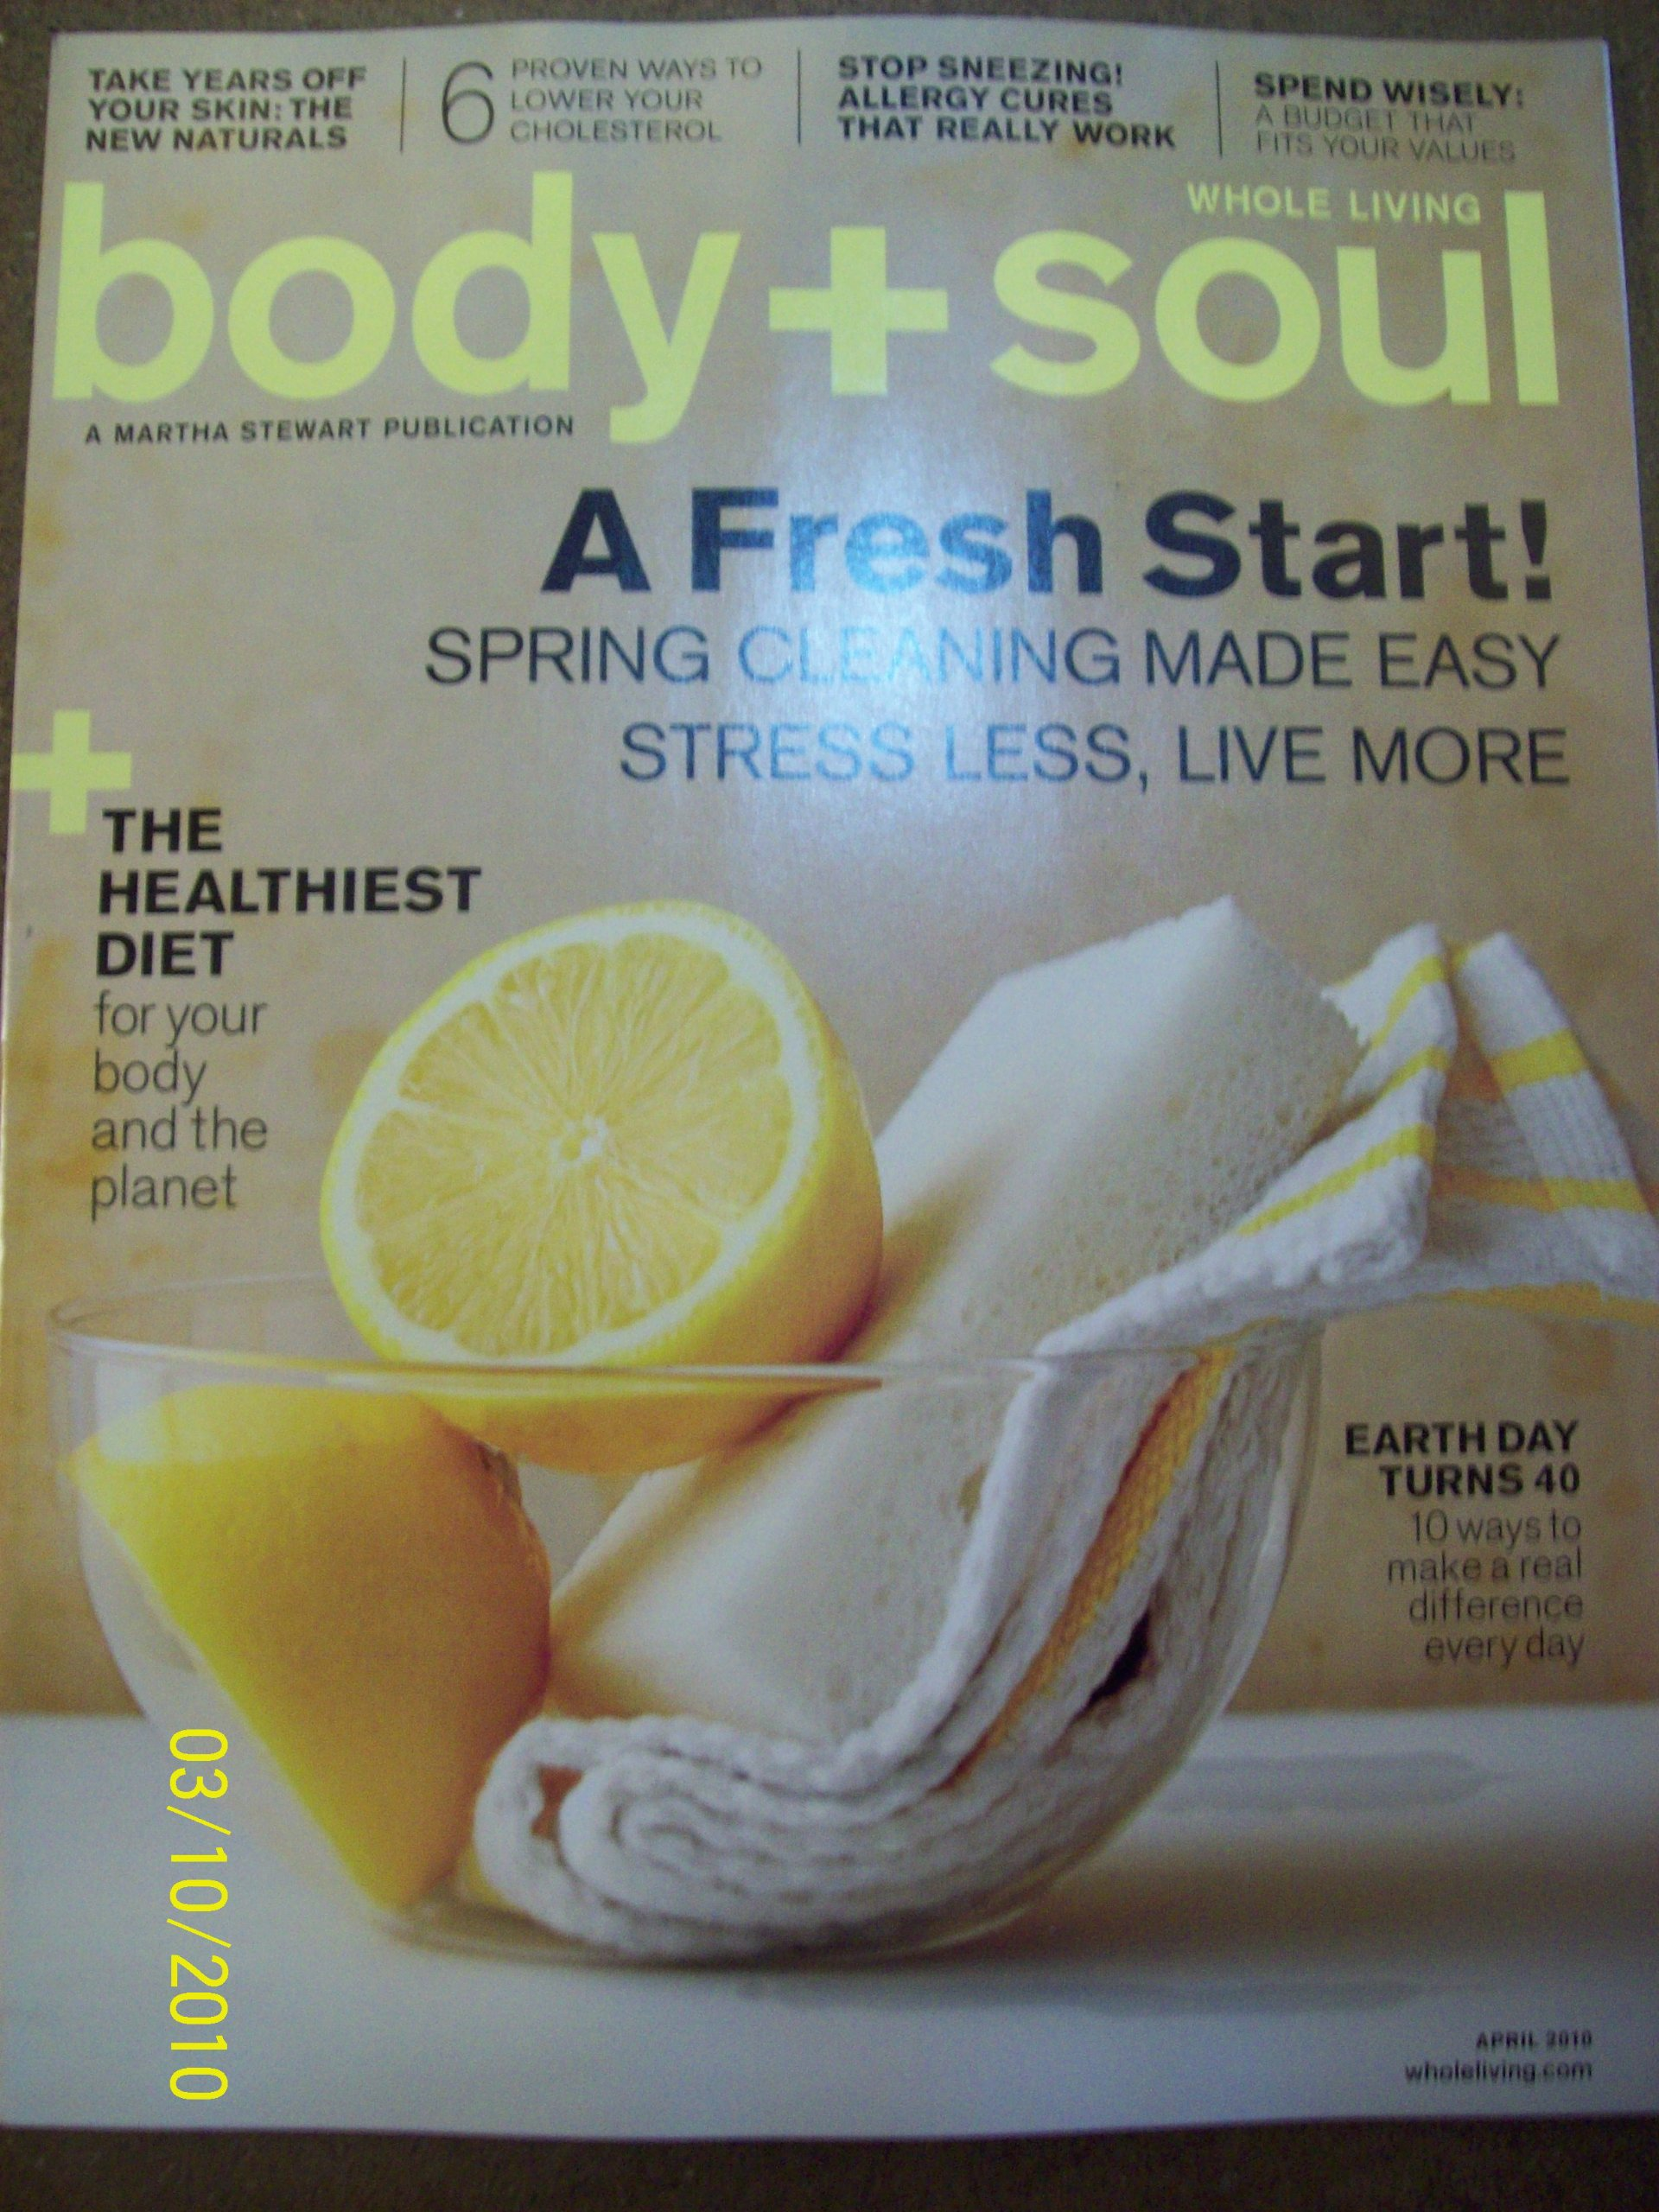 Download Body + Soul April 2010 A Fresh Start! The Healthiest Diet Allergy Cures That Really Work Spend Wisely Earth Day Turns 40 ebook